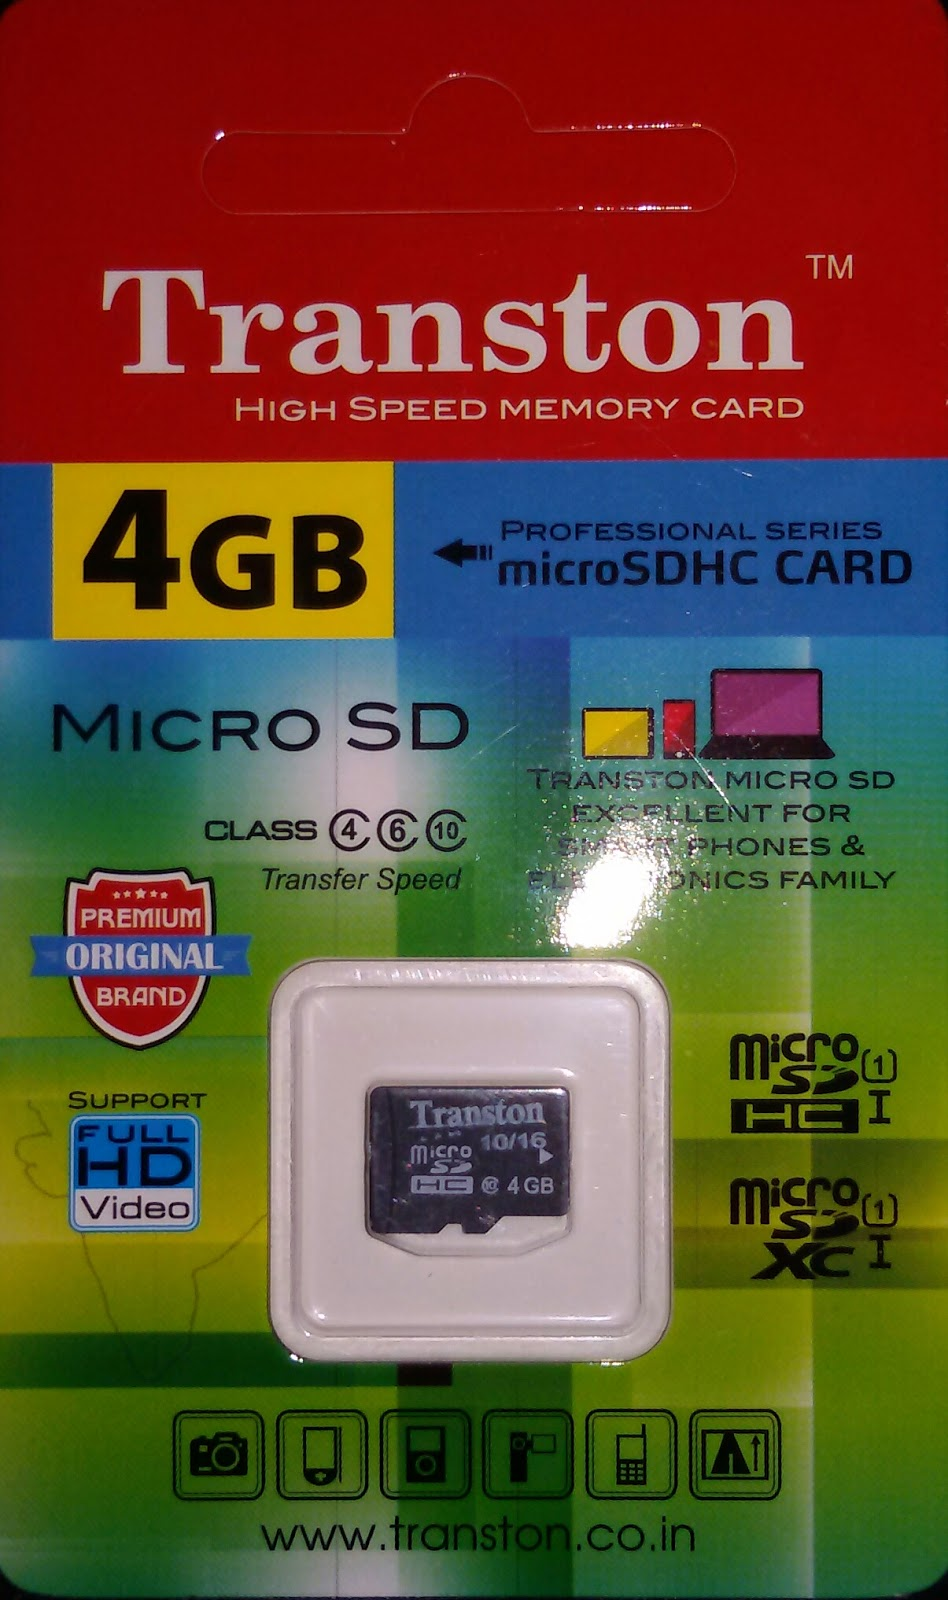 Transton 4gb High Speed Memory Card Micro Sd Hc Sk Noorbasha Sandisk